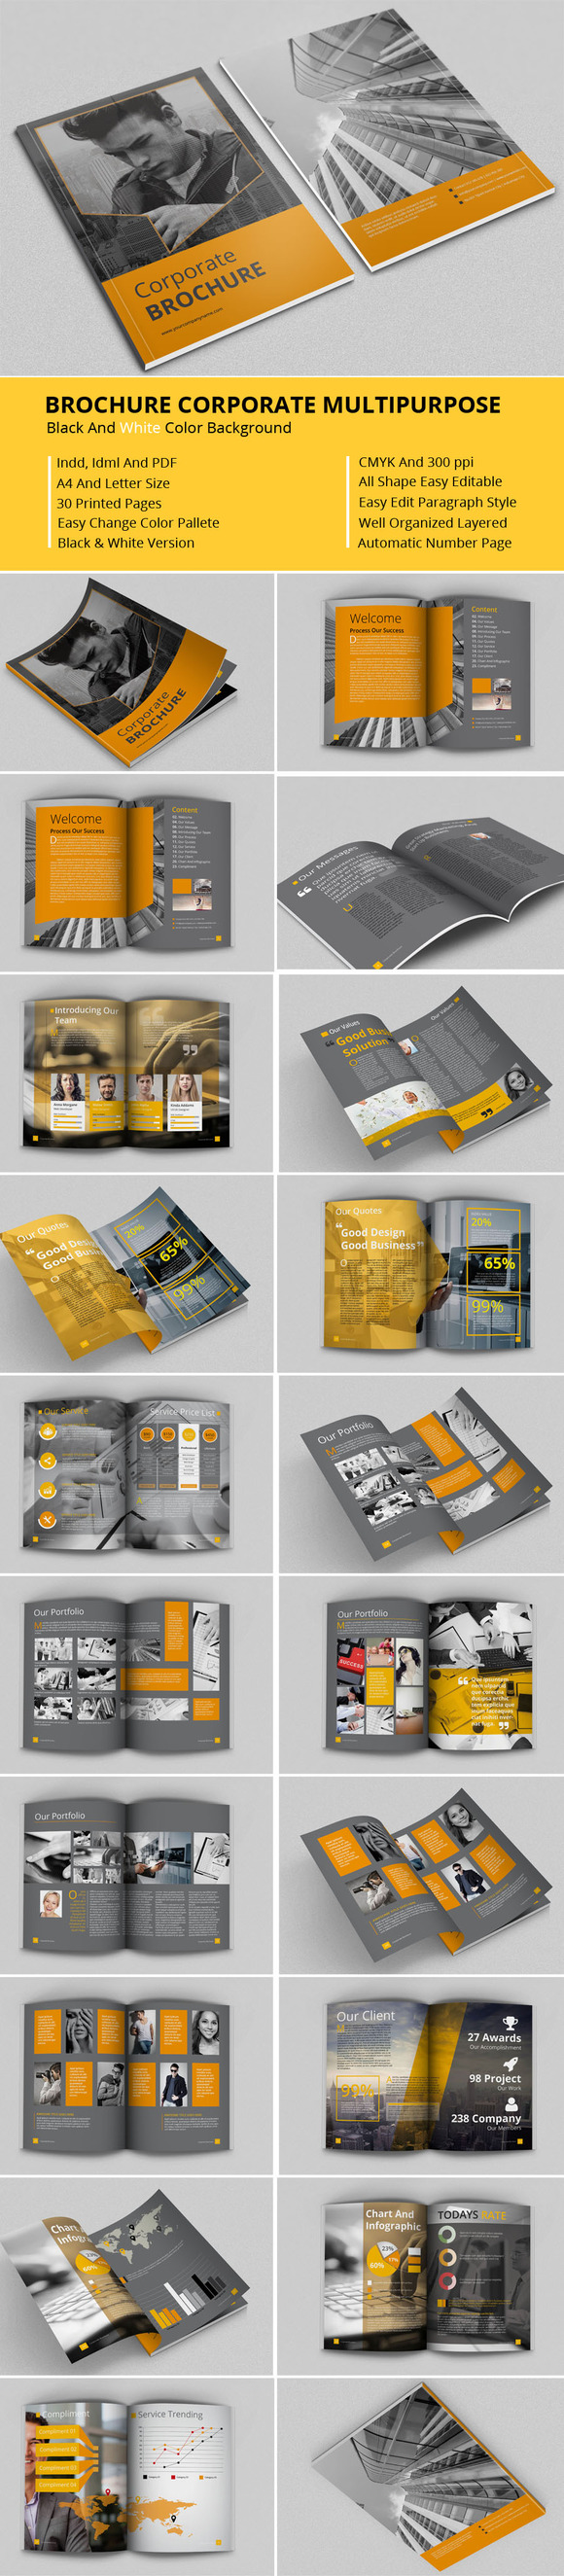 Brochure Corporate Multipurpose